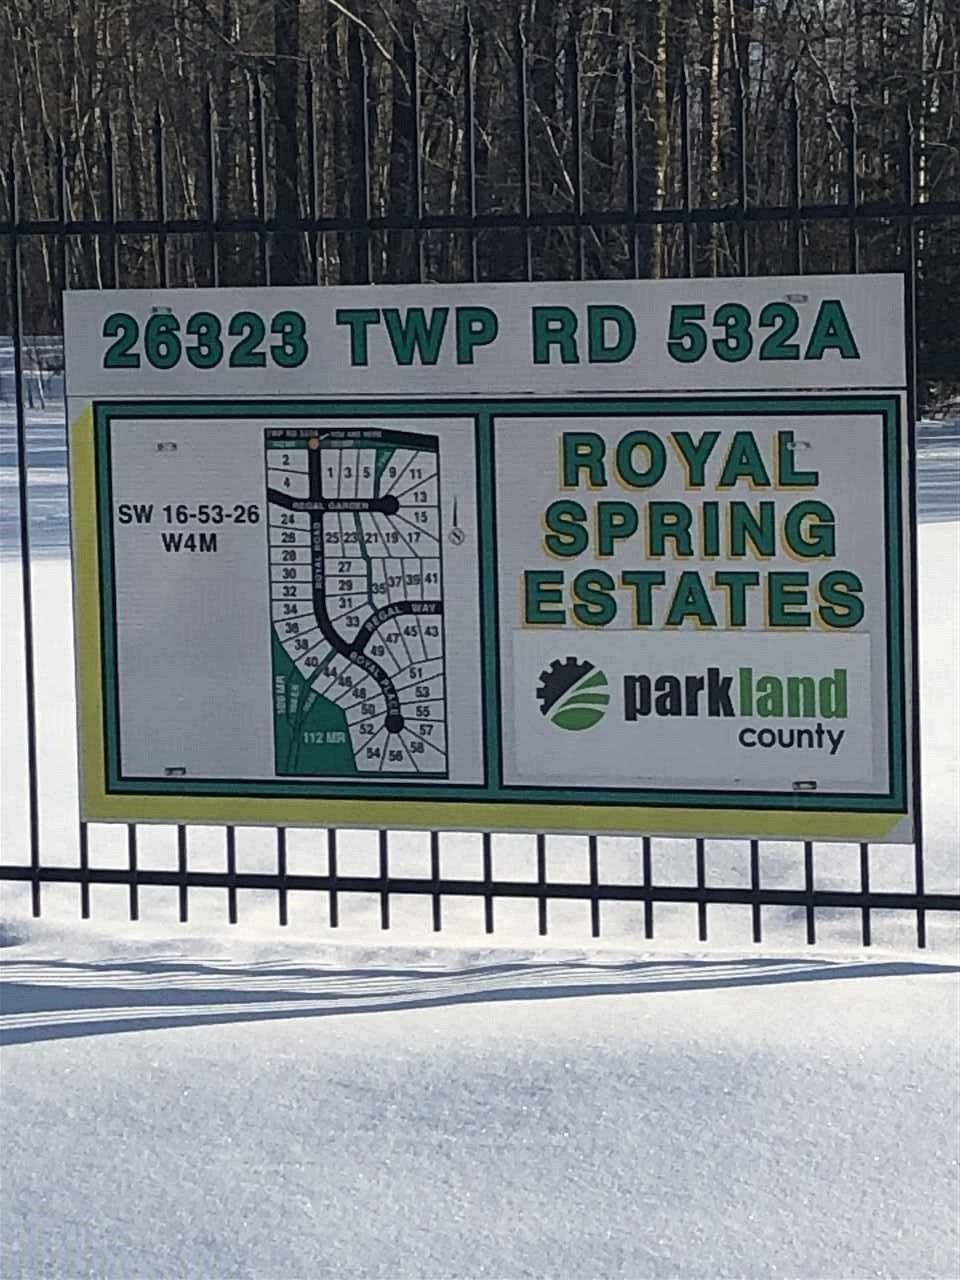 Main Photo: 26323 TWP RD 532 A: Rural Parkland County Rural Land/Vacant Lot for sale : MLS®# E4141321